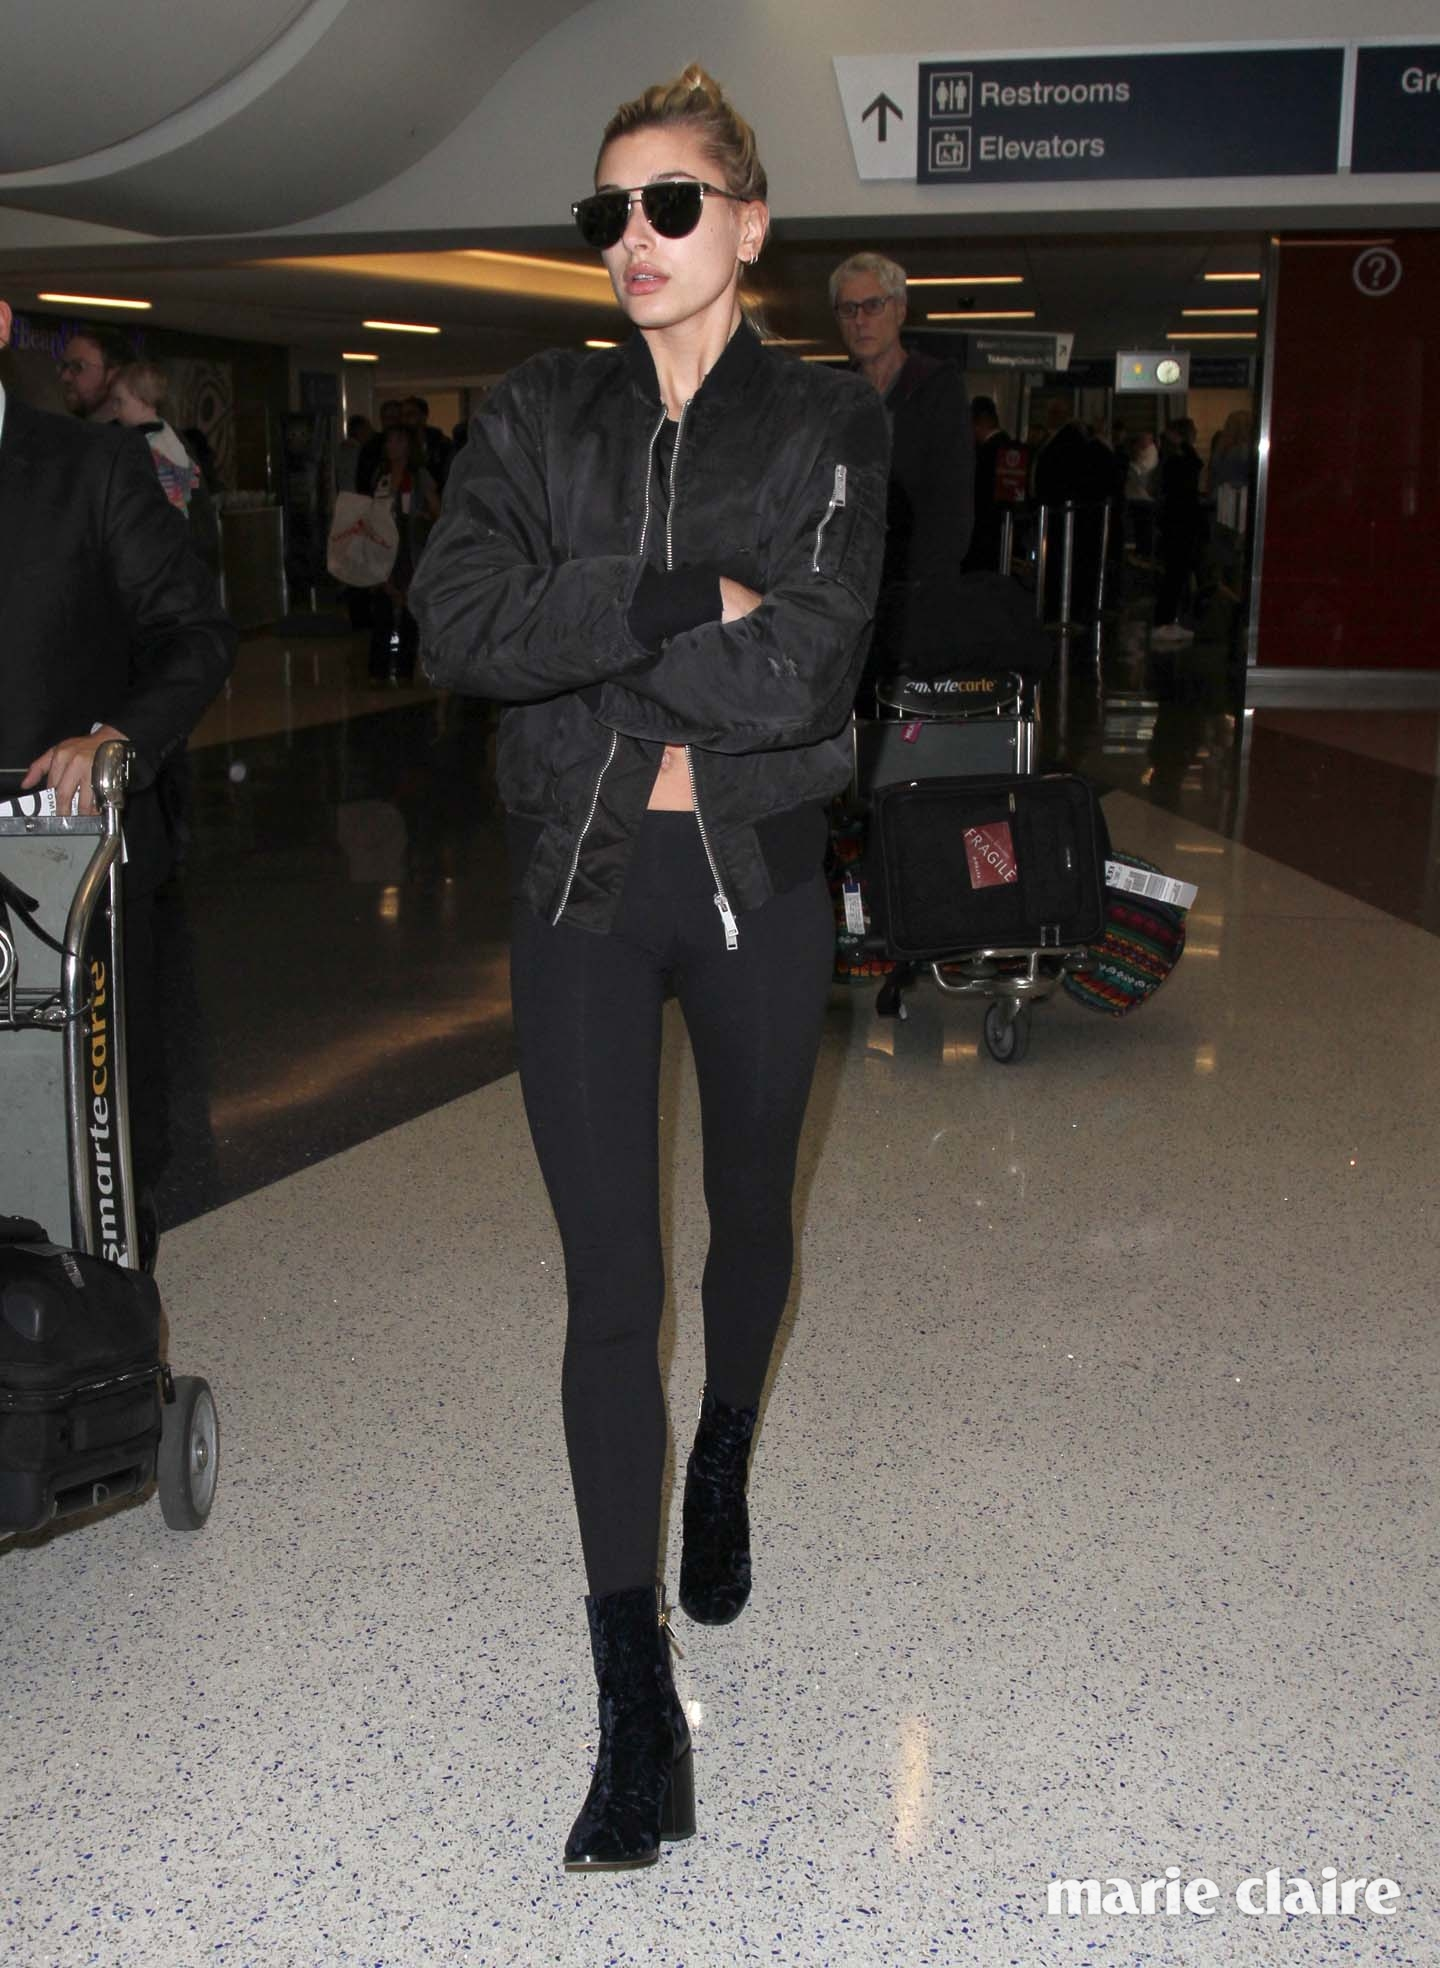 Hailey Baldwin arrives at Los Angeles International (LAX) Airport Featuring: Hailey Baldwin Where: Los Angeles, California, United States When: 29 Nov 2016 Credit: